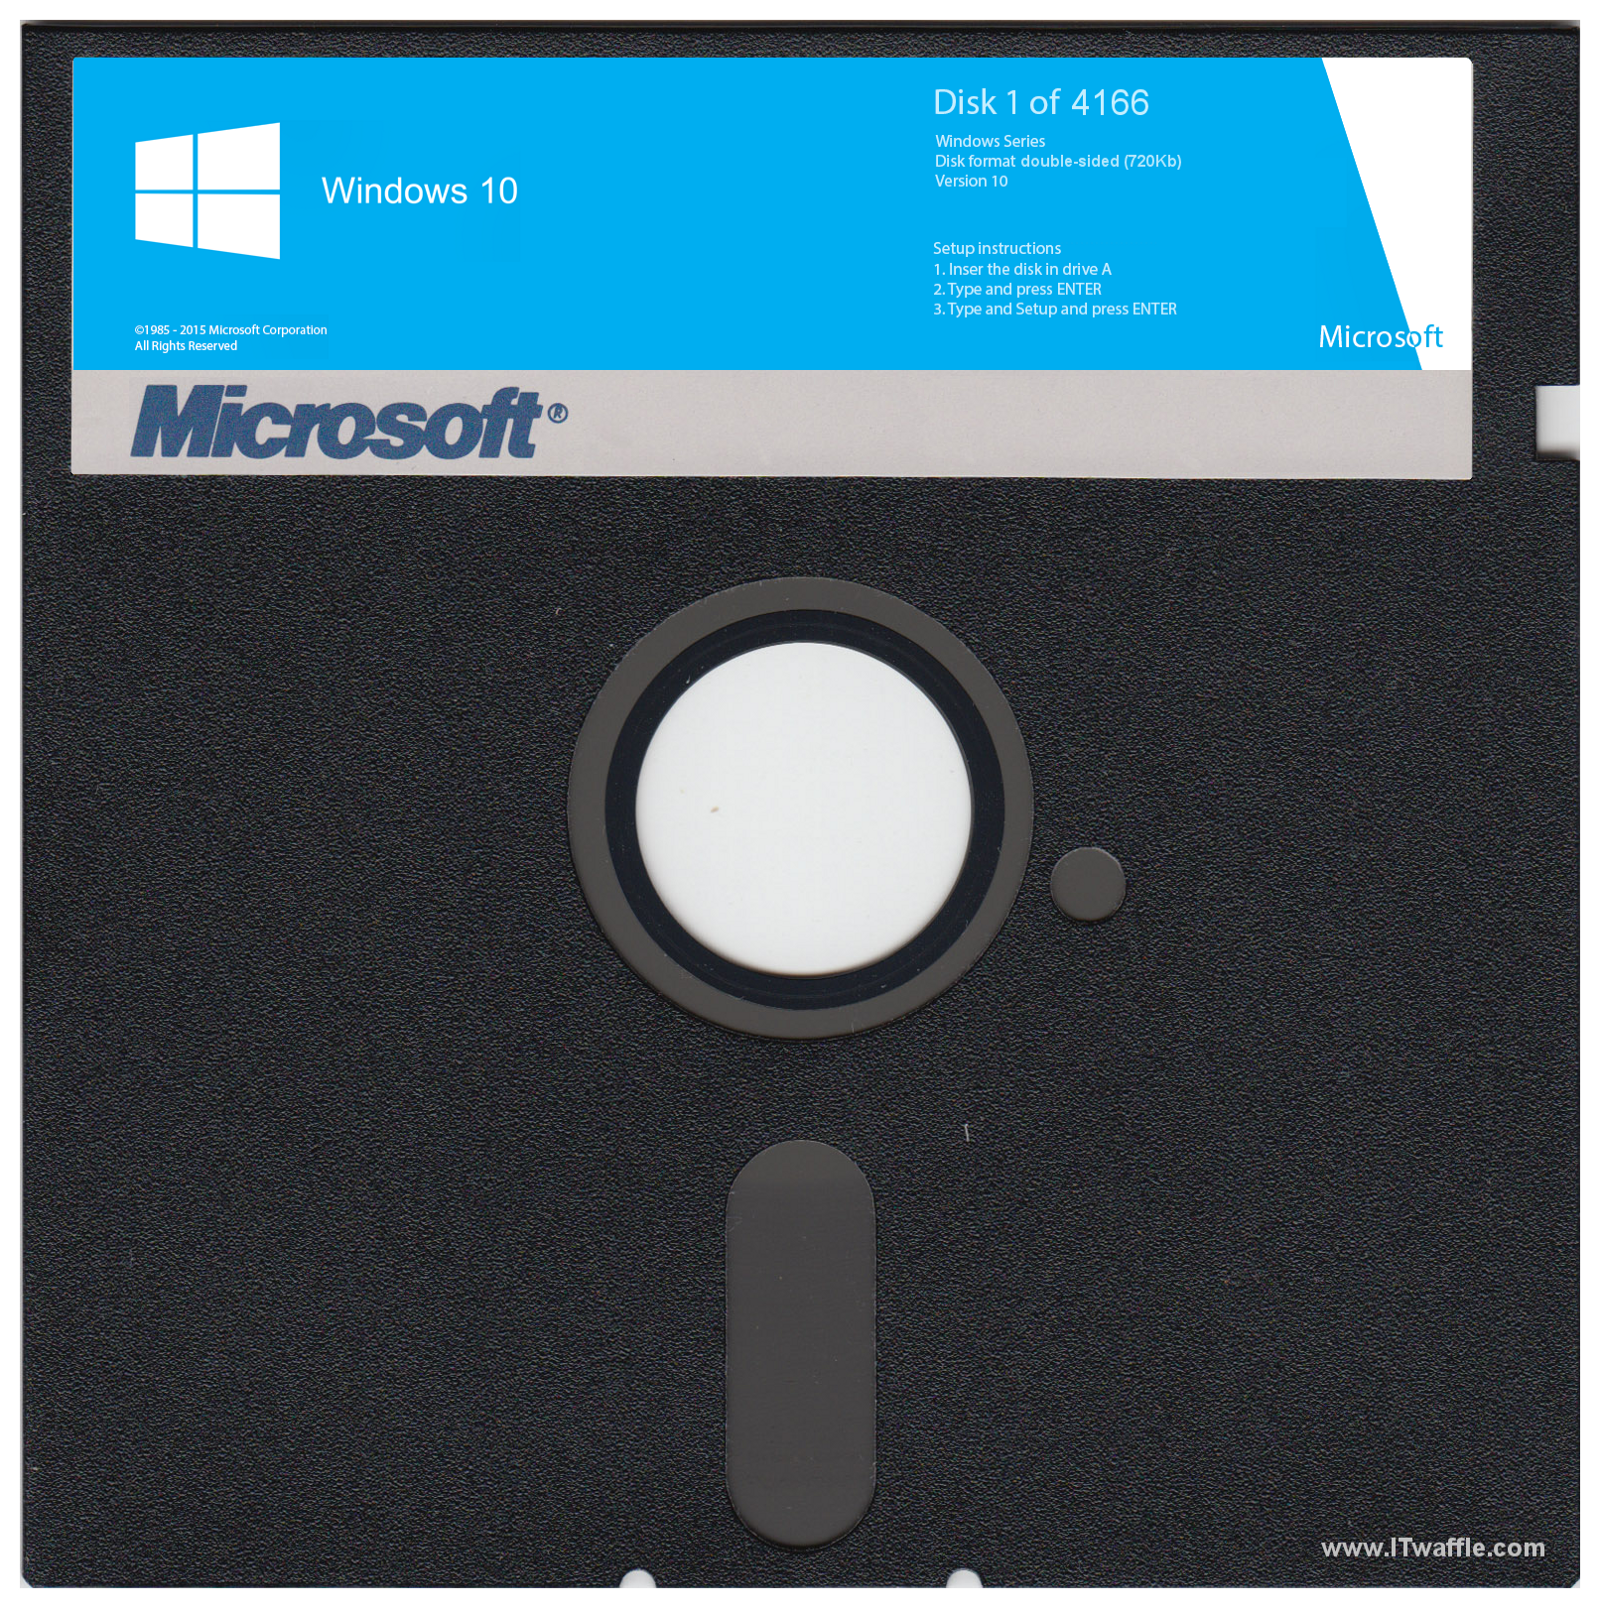 windows-10-floppy-disk